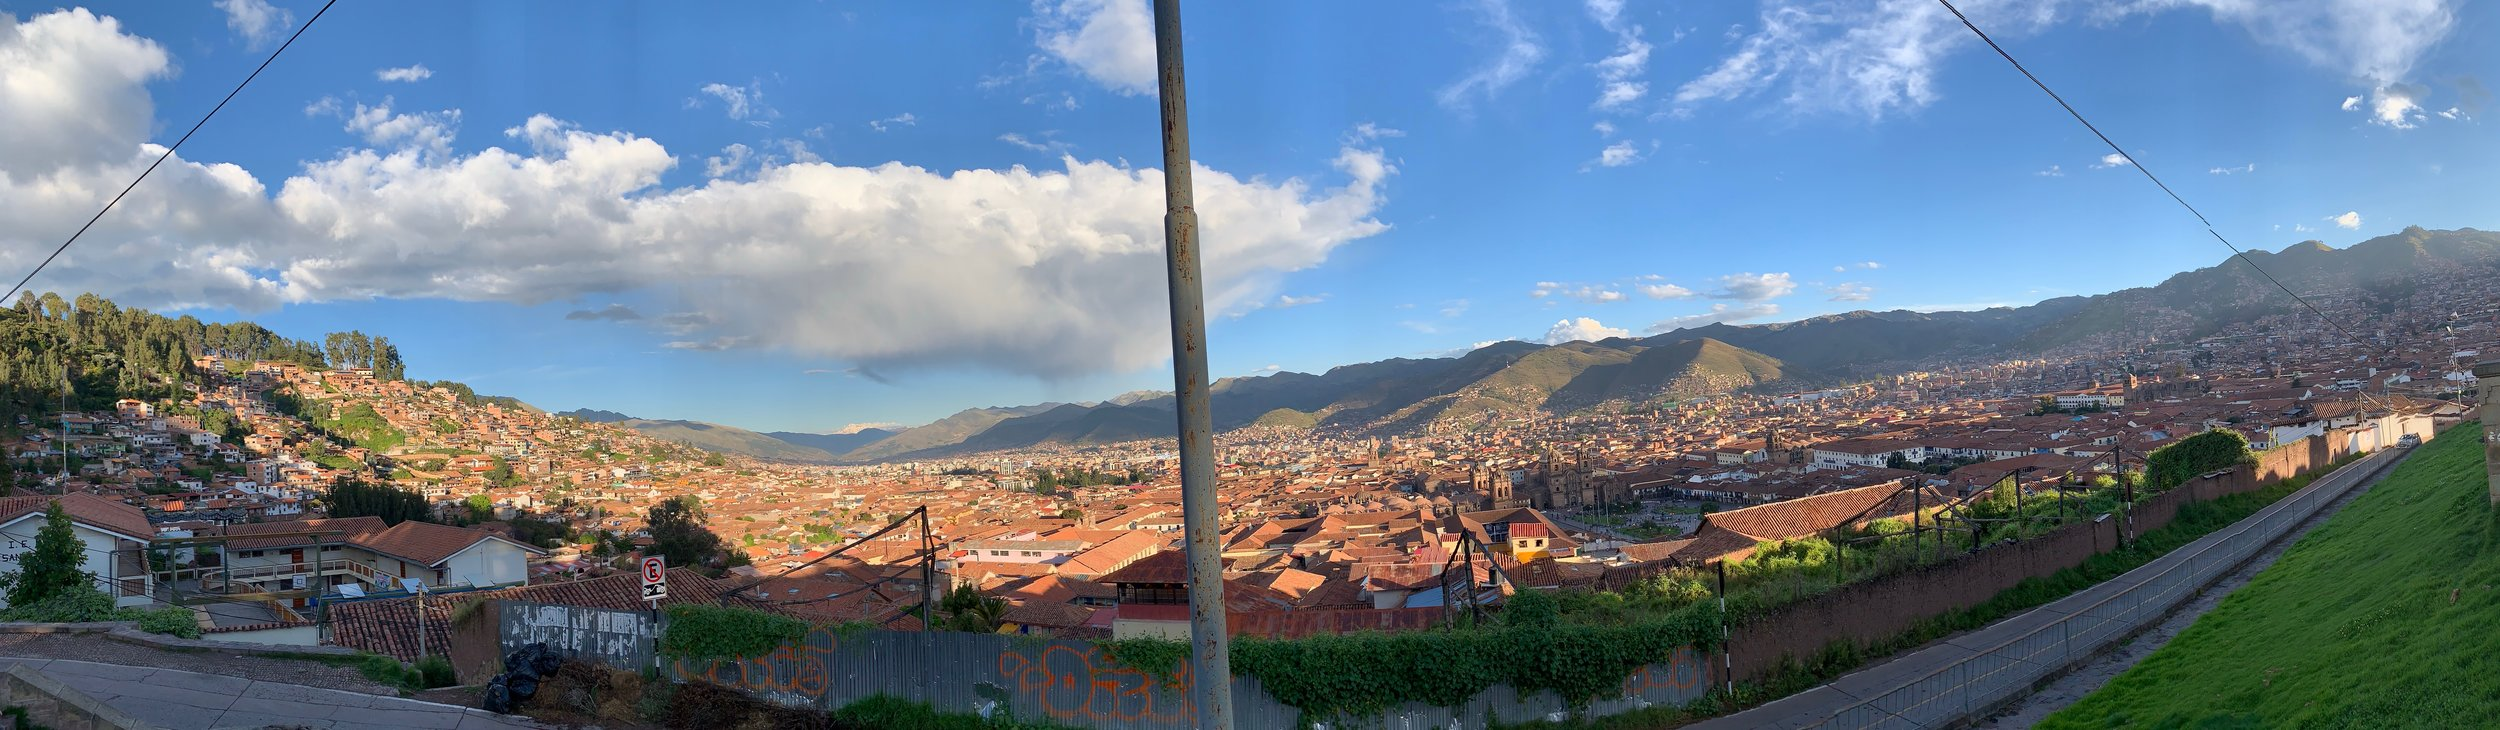 The view of Cusco from the ruins of Sacsayhuaman above the city.